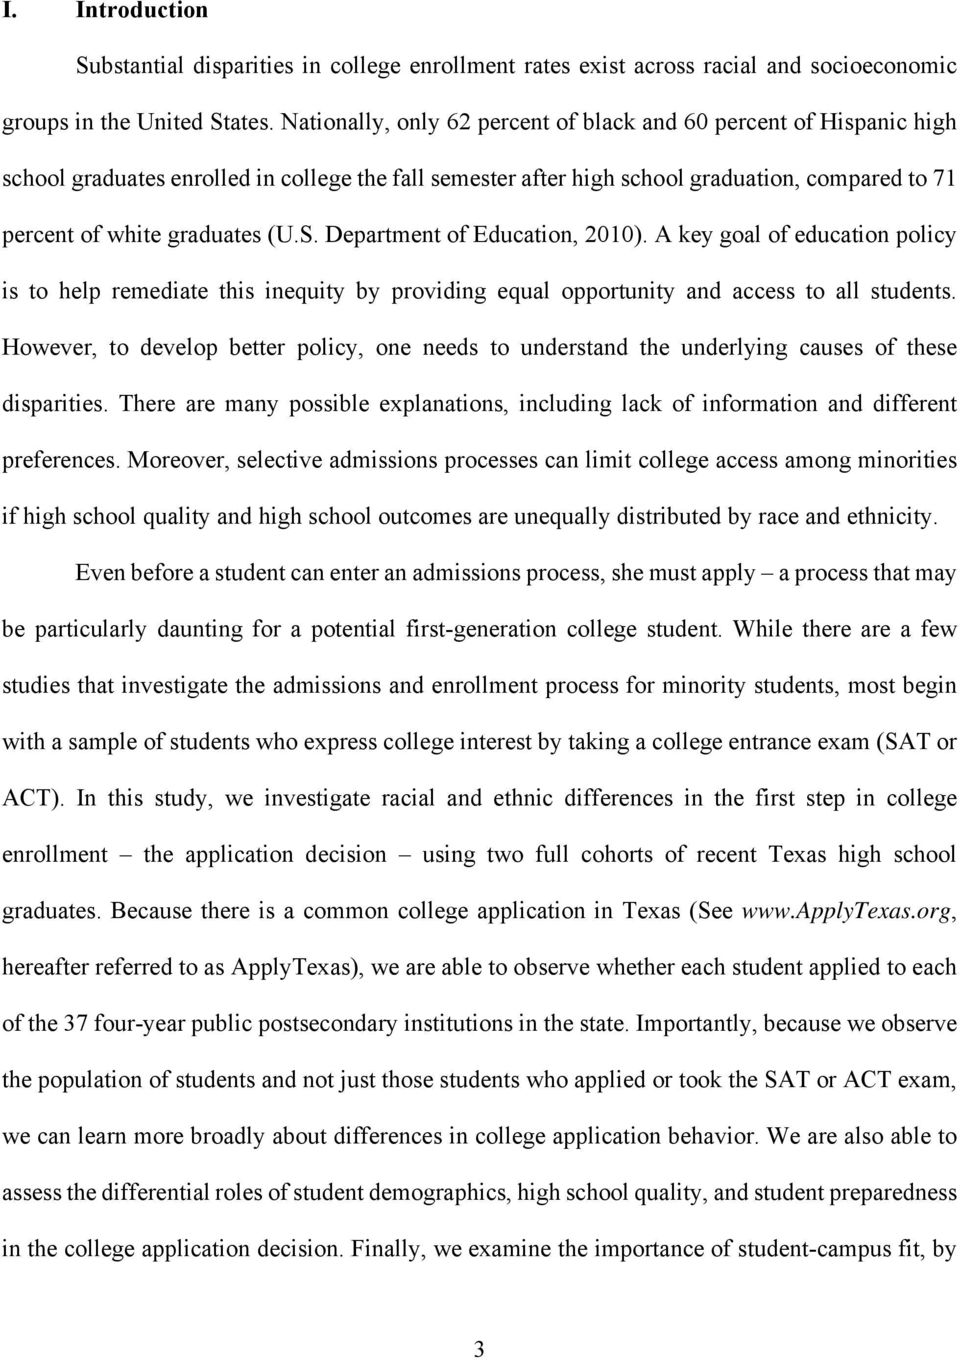 S. Department of Education, 2010). A key goal of education policy is to help remediate this inequity by providing equal opportunity and access to all students.